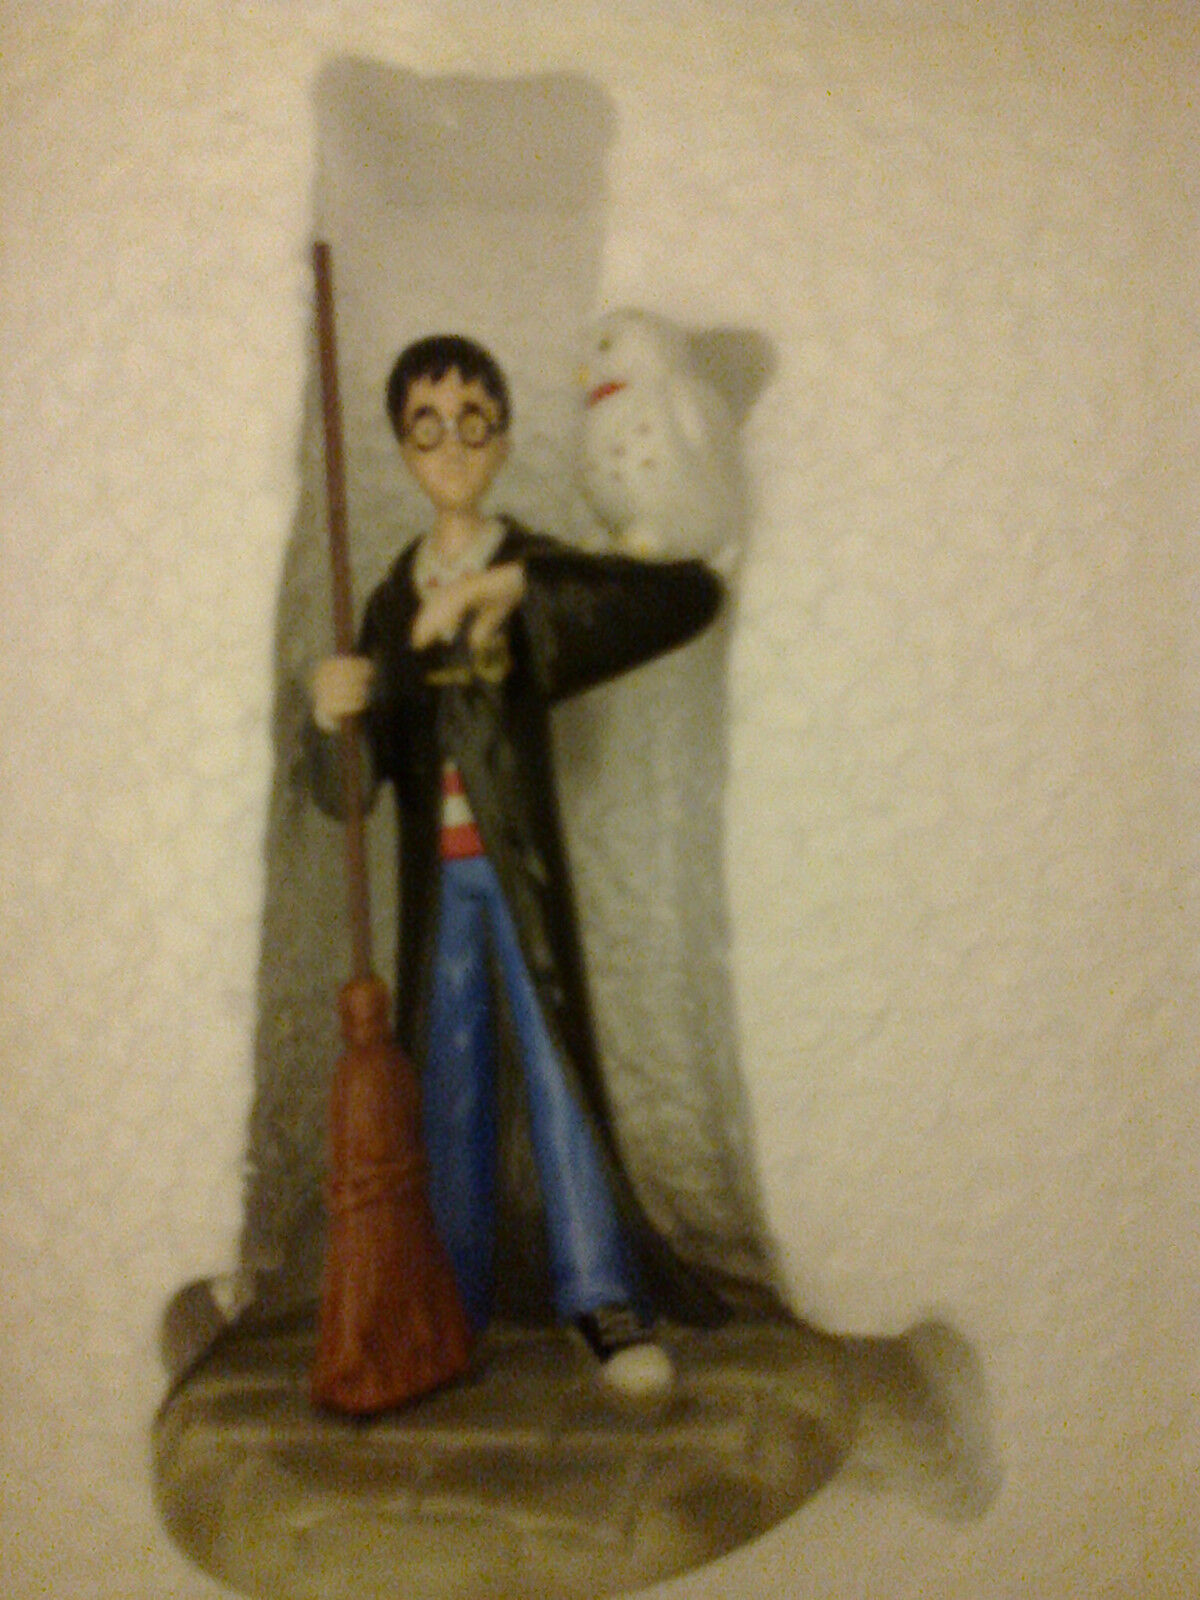 HARRY POTTER royal doulton 2001 series wizard in training